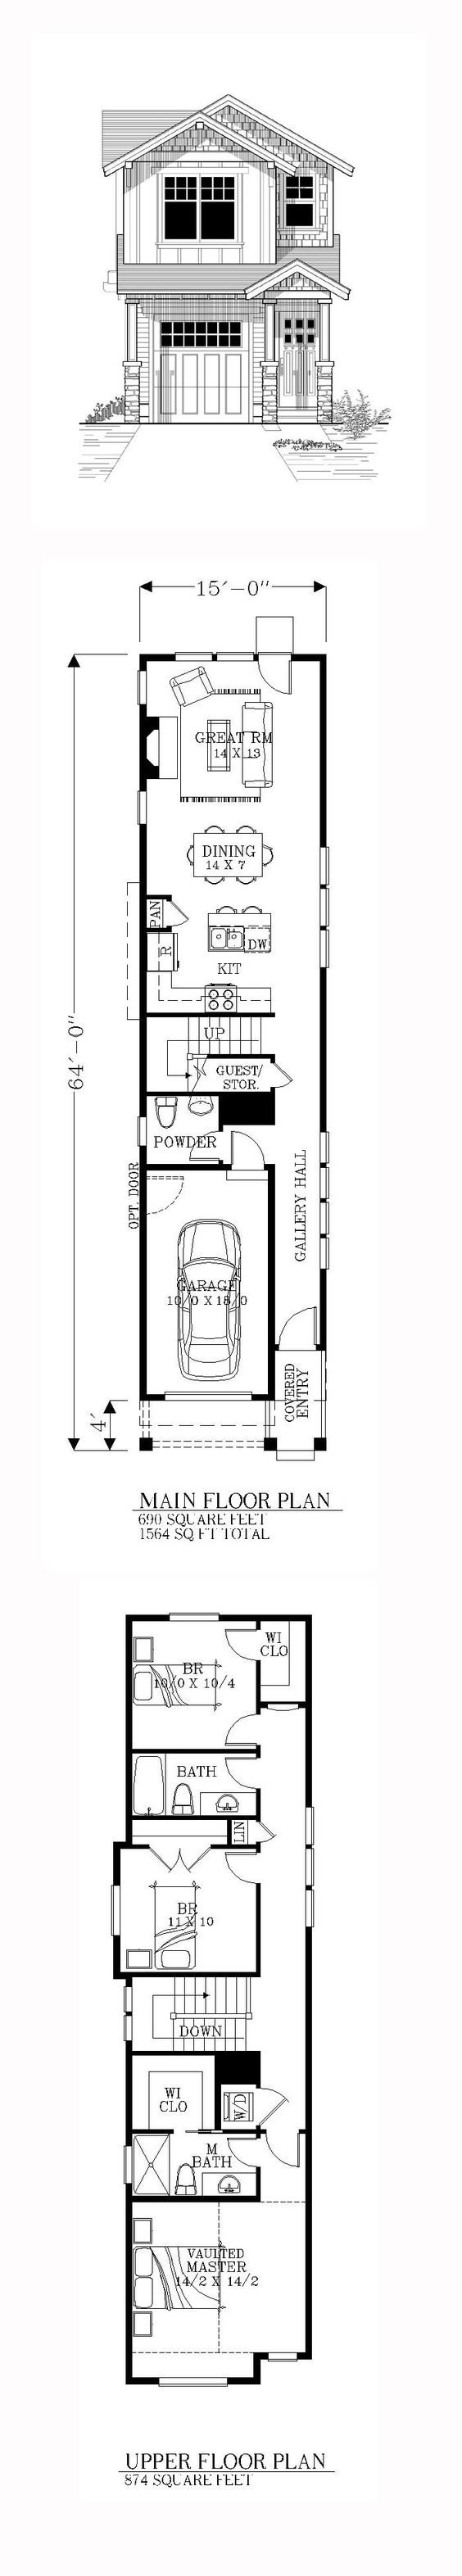 narrow lot house plan 46245 total living area 1564 sq ft 3